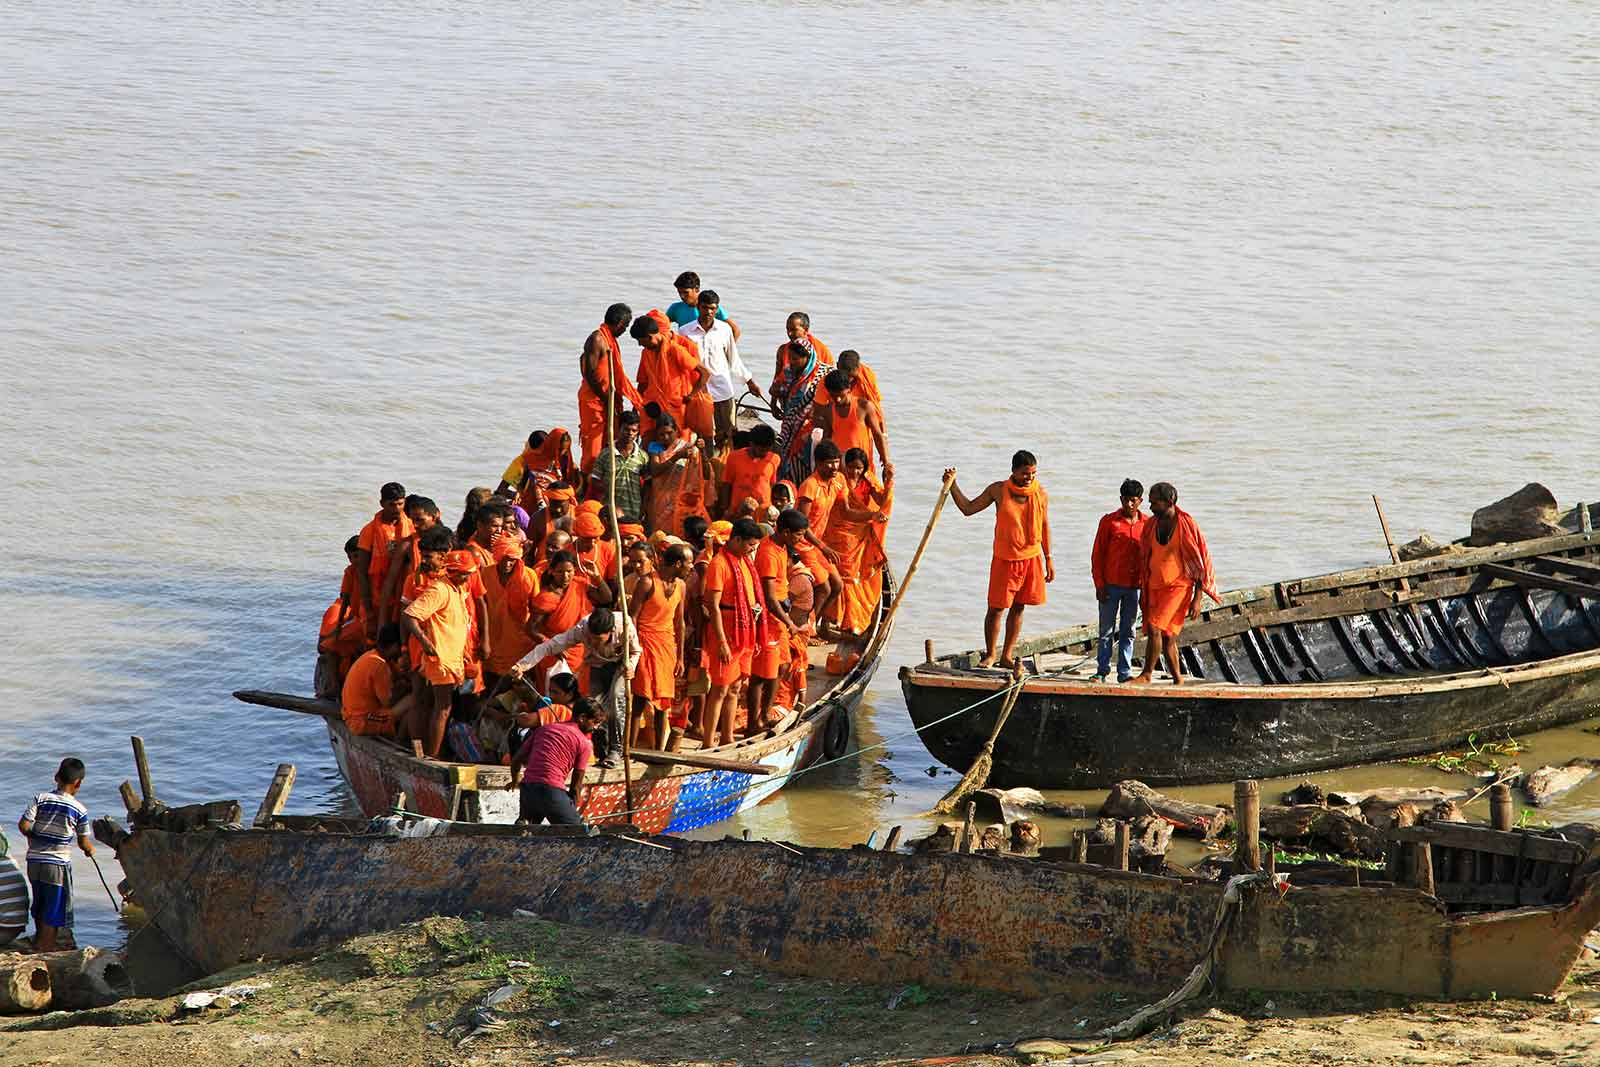 In Hinduism, the river Ganges is considered sacred and is personified as a goddess known as Ganga. It is worshipped by Hindus who believe that bathing in the river causes the remission of sins and facilitates Moksha (liberation from the cycle of life and death). Pilgrims travel long distances to immerse the ashes of their kin in the precious water of the Ganges, bringing their spirits closer to moksha.